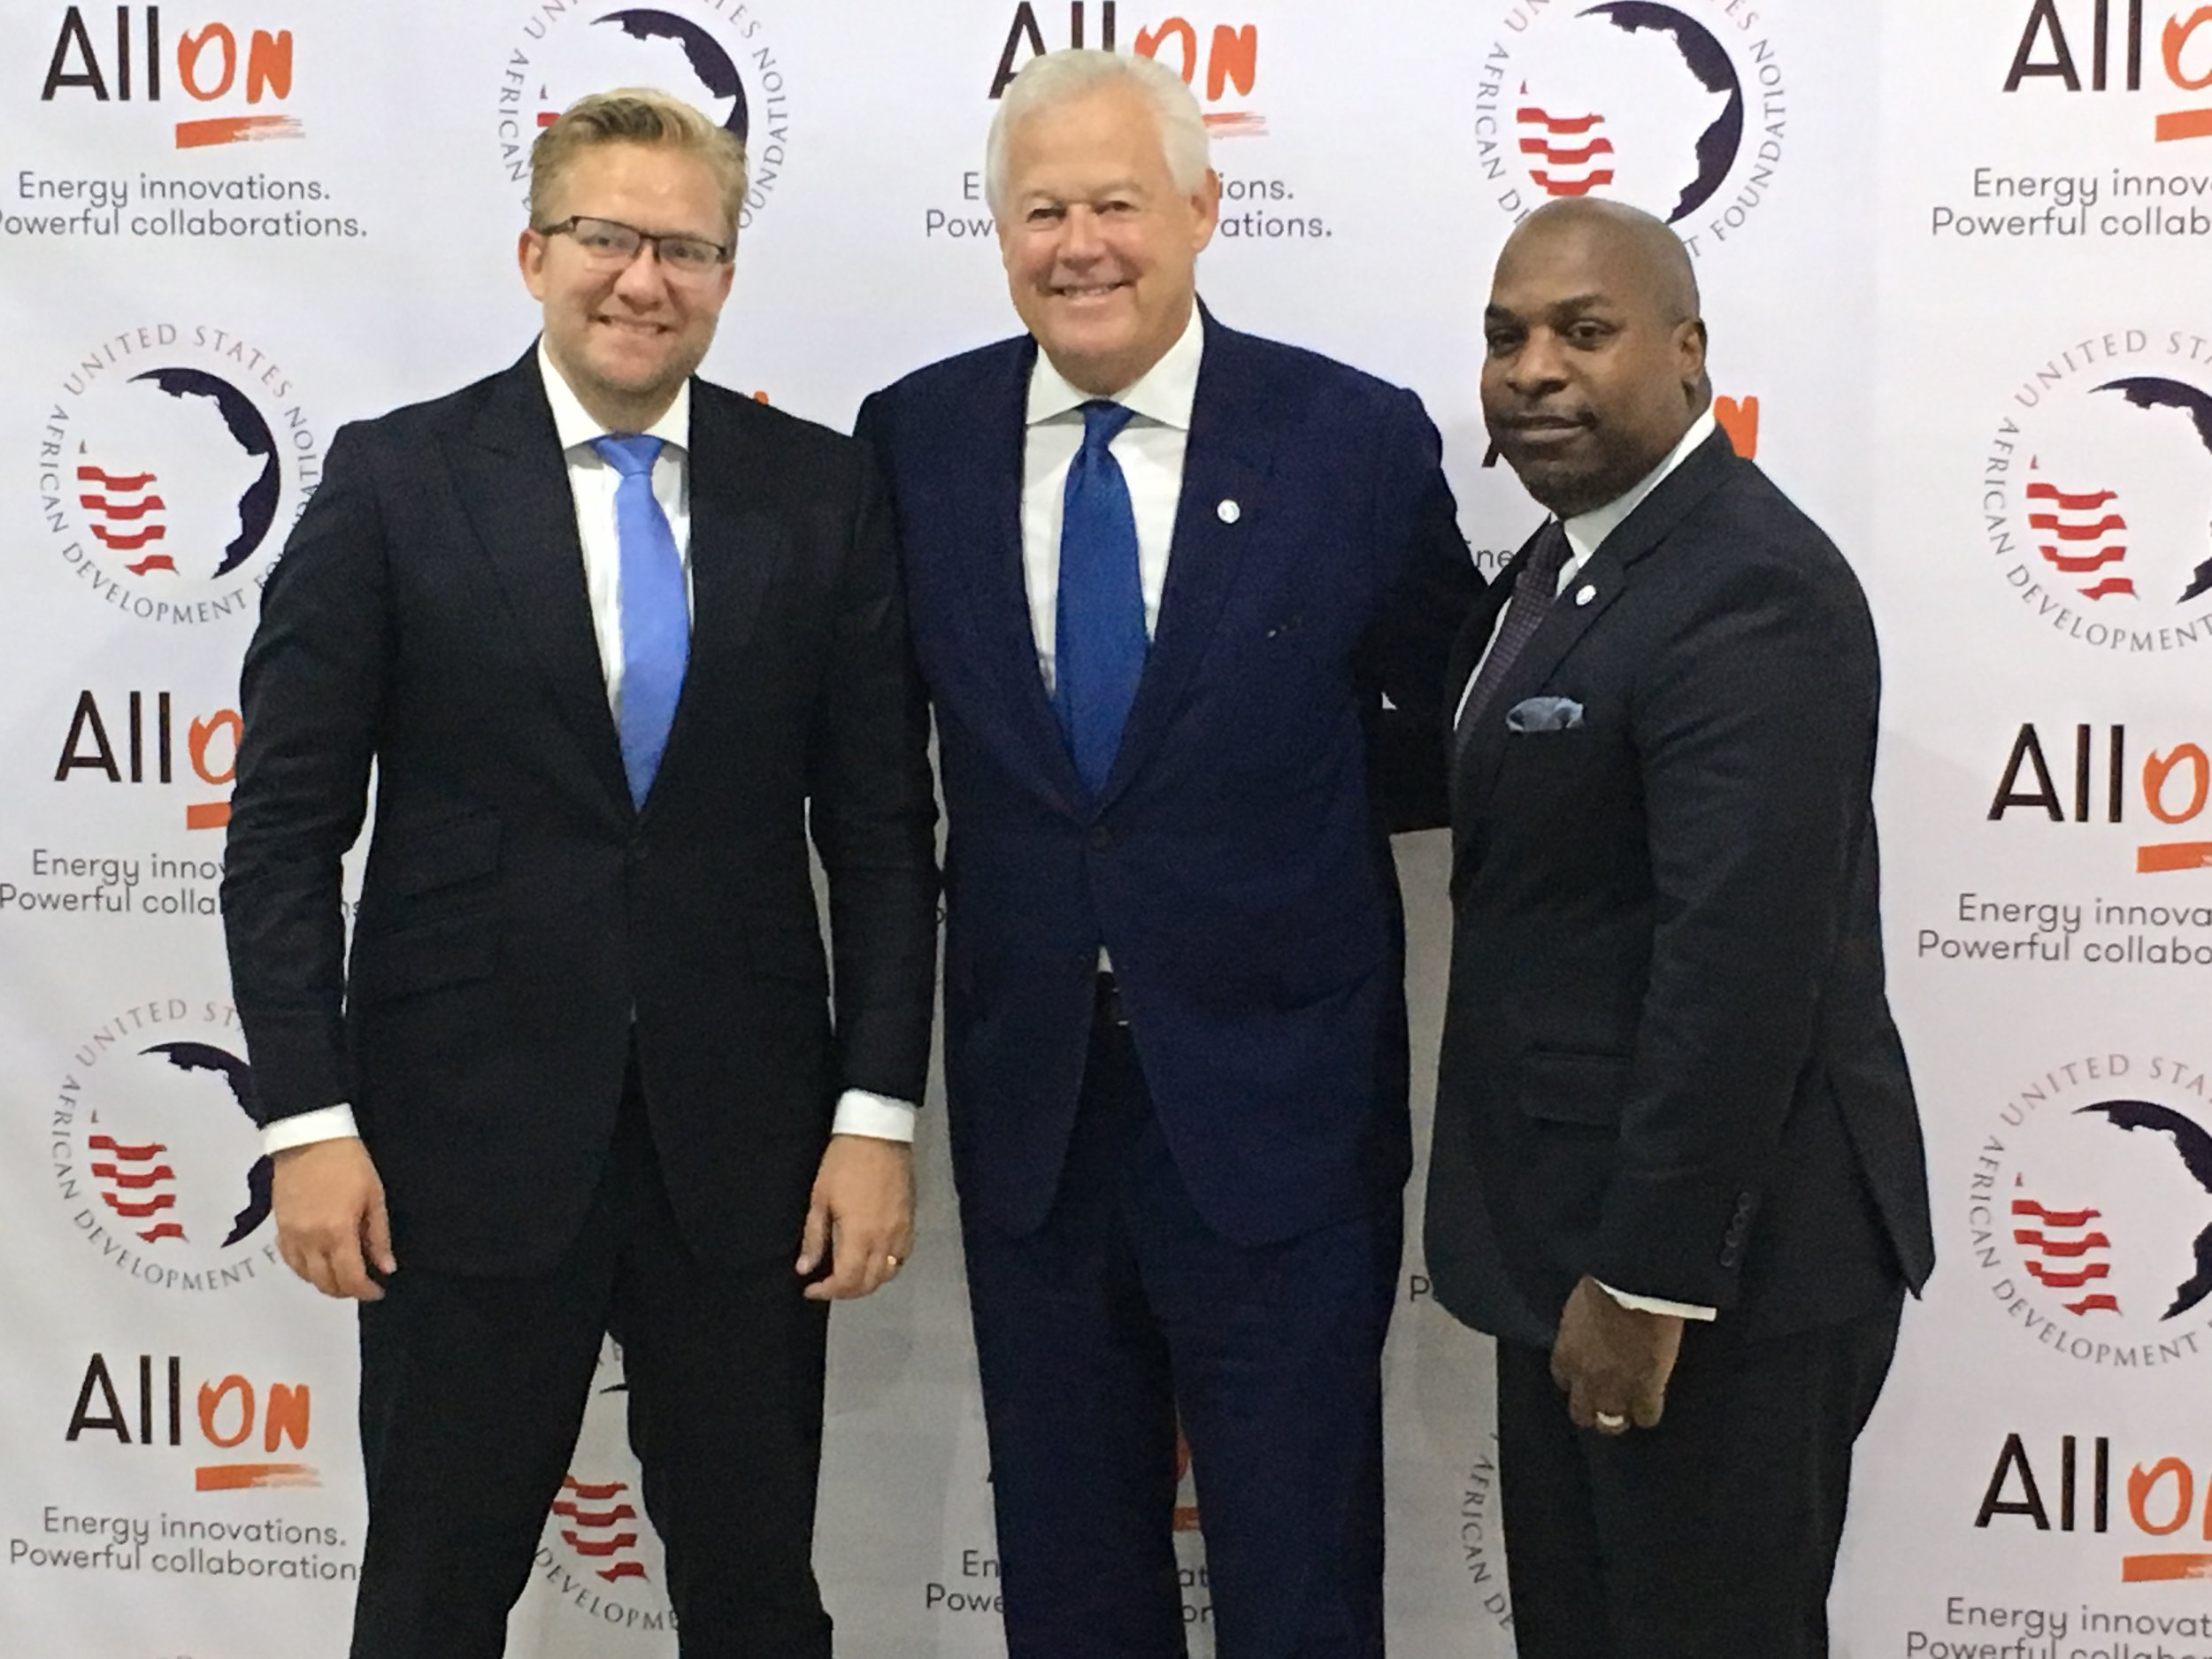 USADF Chair Jack Leslie (center), President & CEO C.D. Glin (right), and All On CEO Wiebe Boer (left) at the Nigeria Off Grid Summit in Lagos, Nigeria. Photo credit: Jeffrey Gilleo